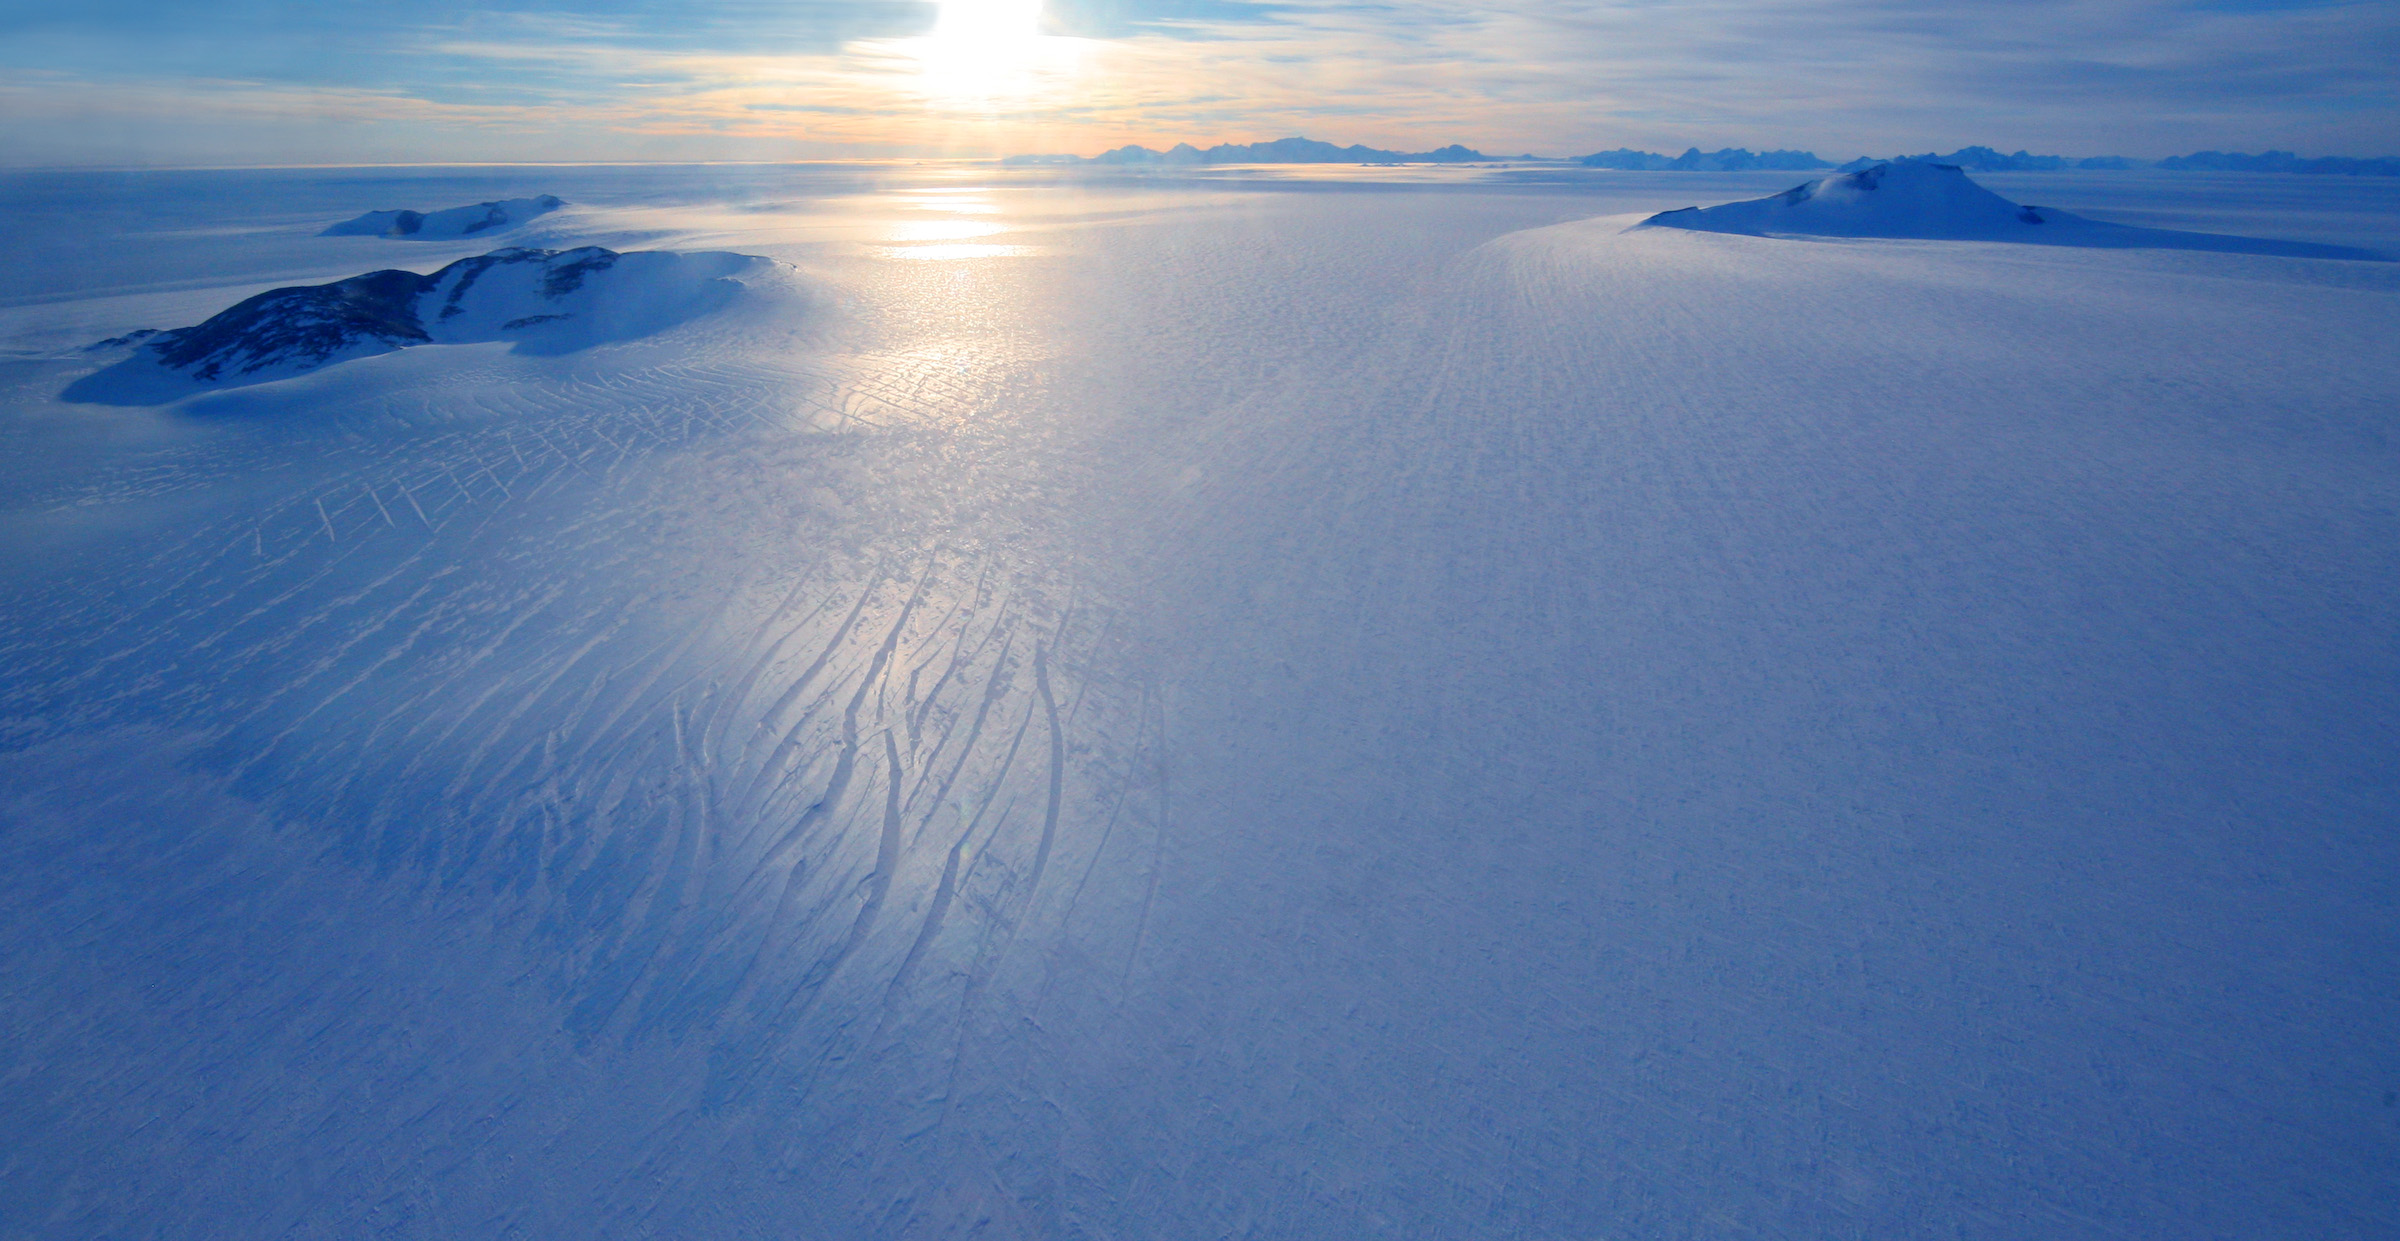 Views over Antarctica, from the airplane